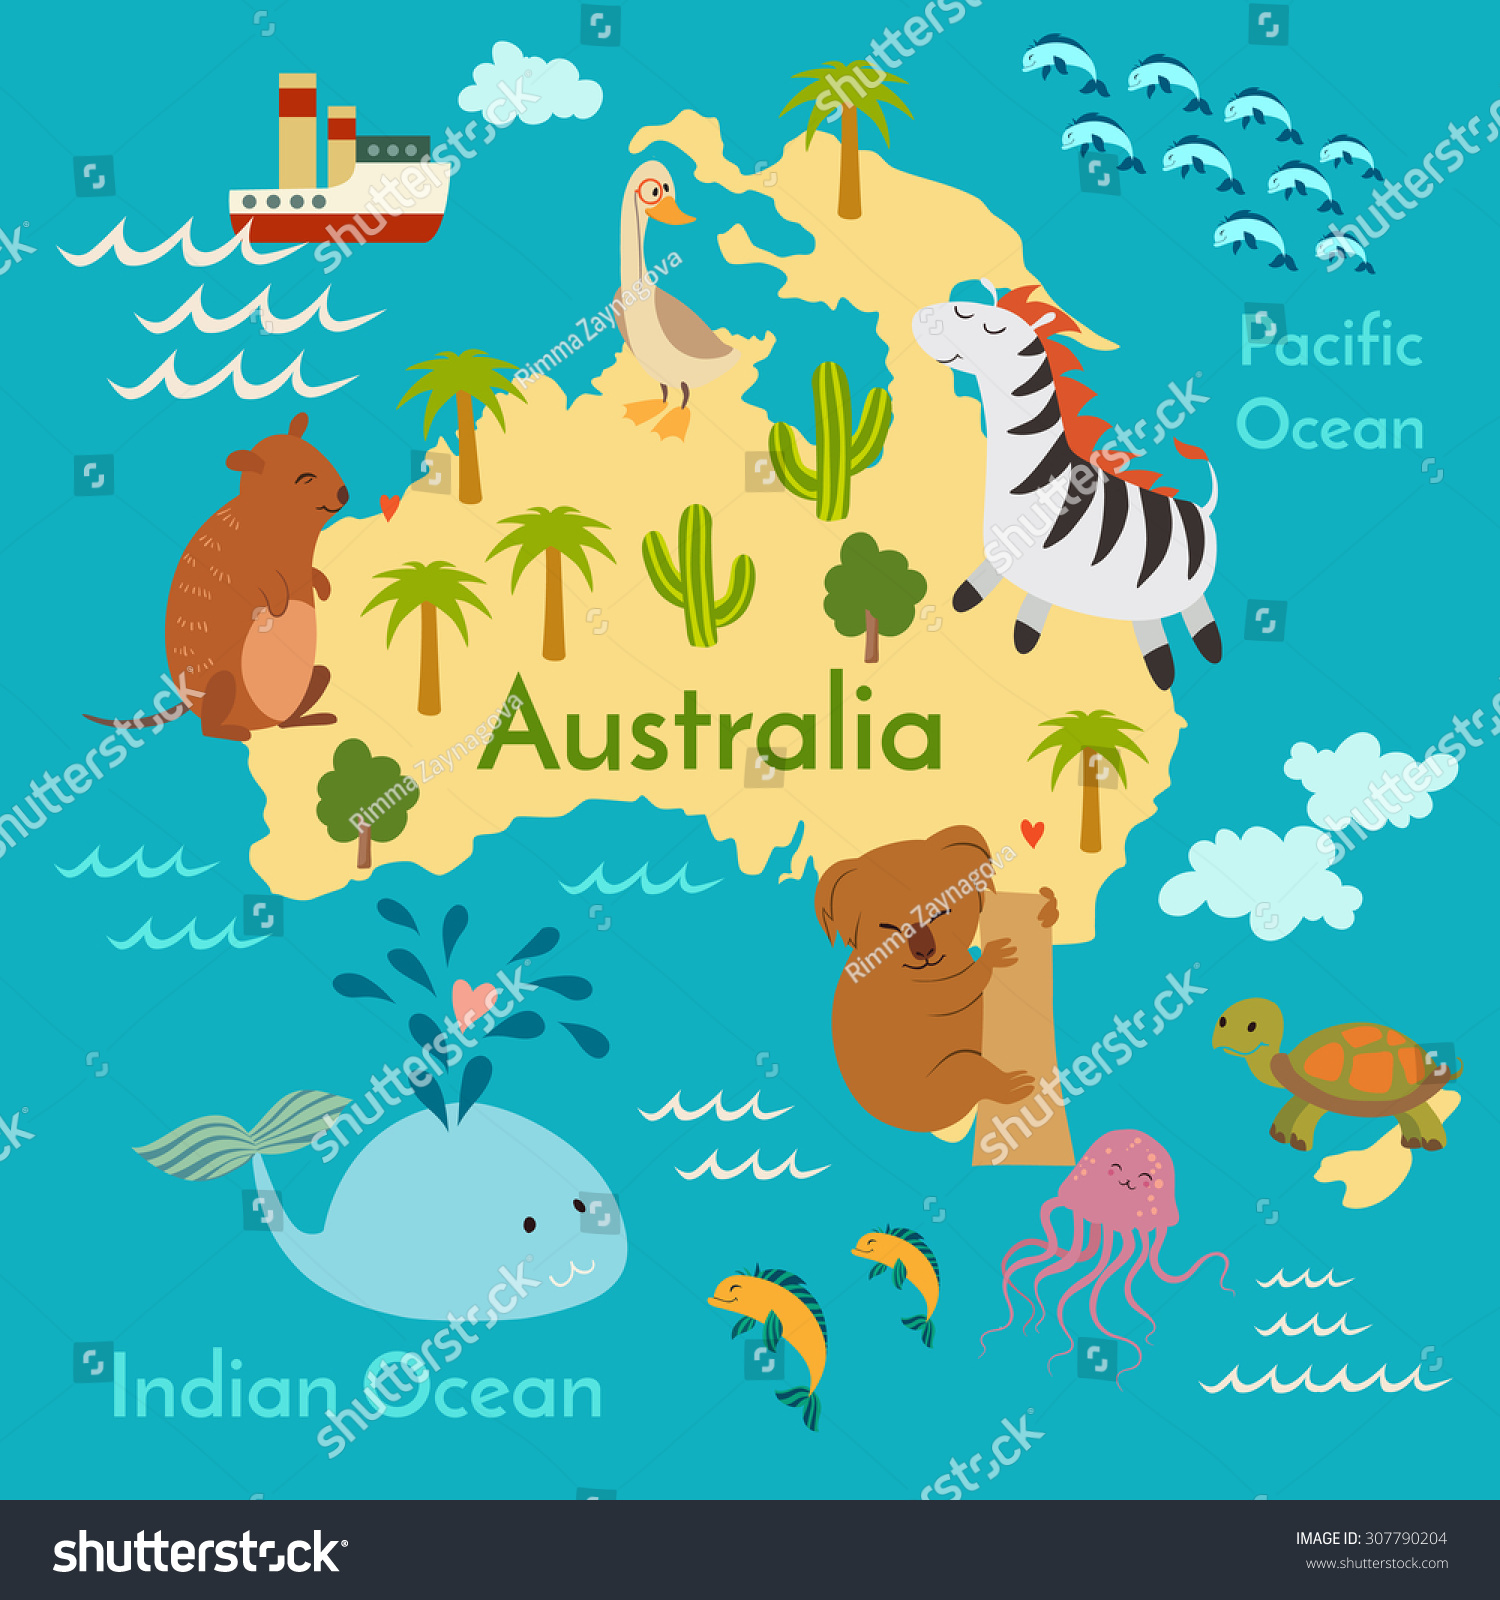 Animals World Map Australia Vector Illustration Stock Vector - Australia in world map